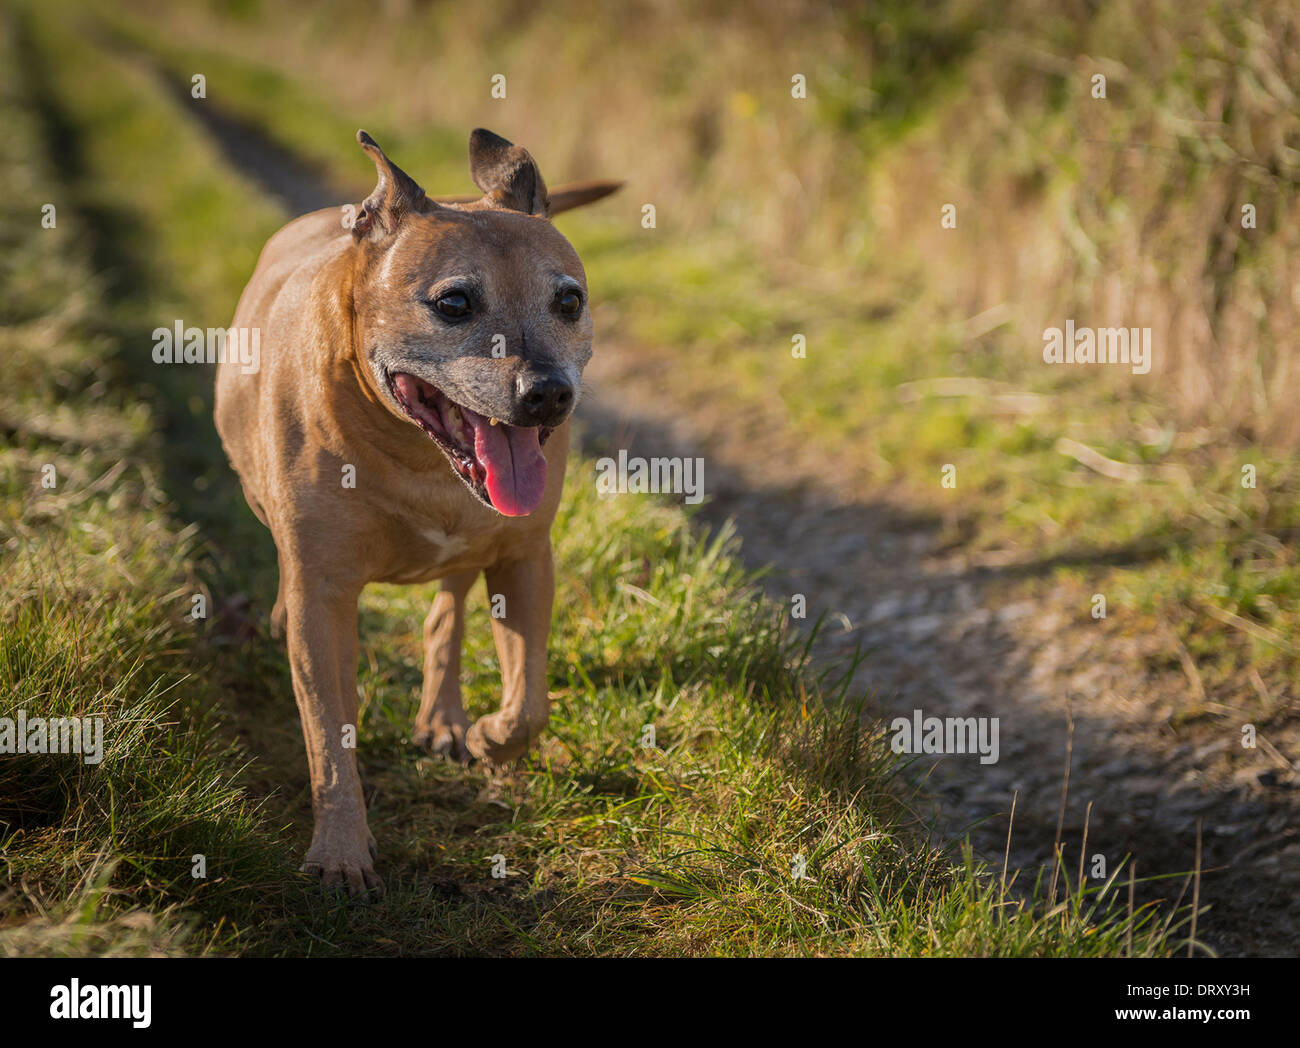 Staffordshire Bull Terrier on country track - Stock Image